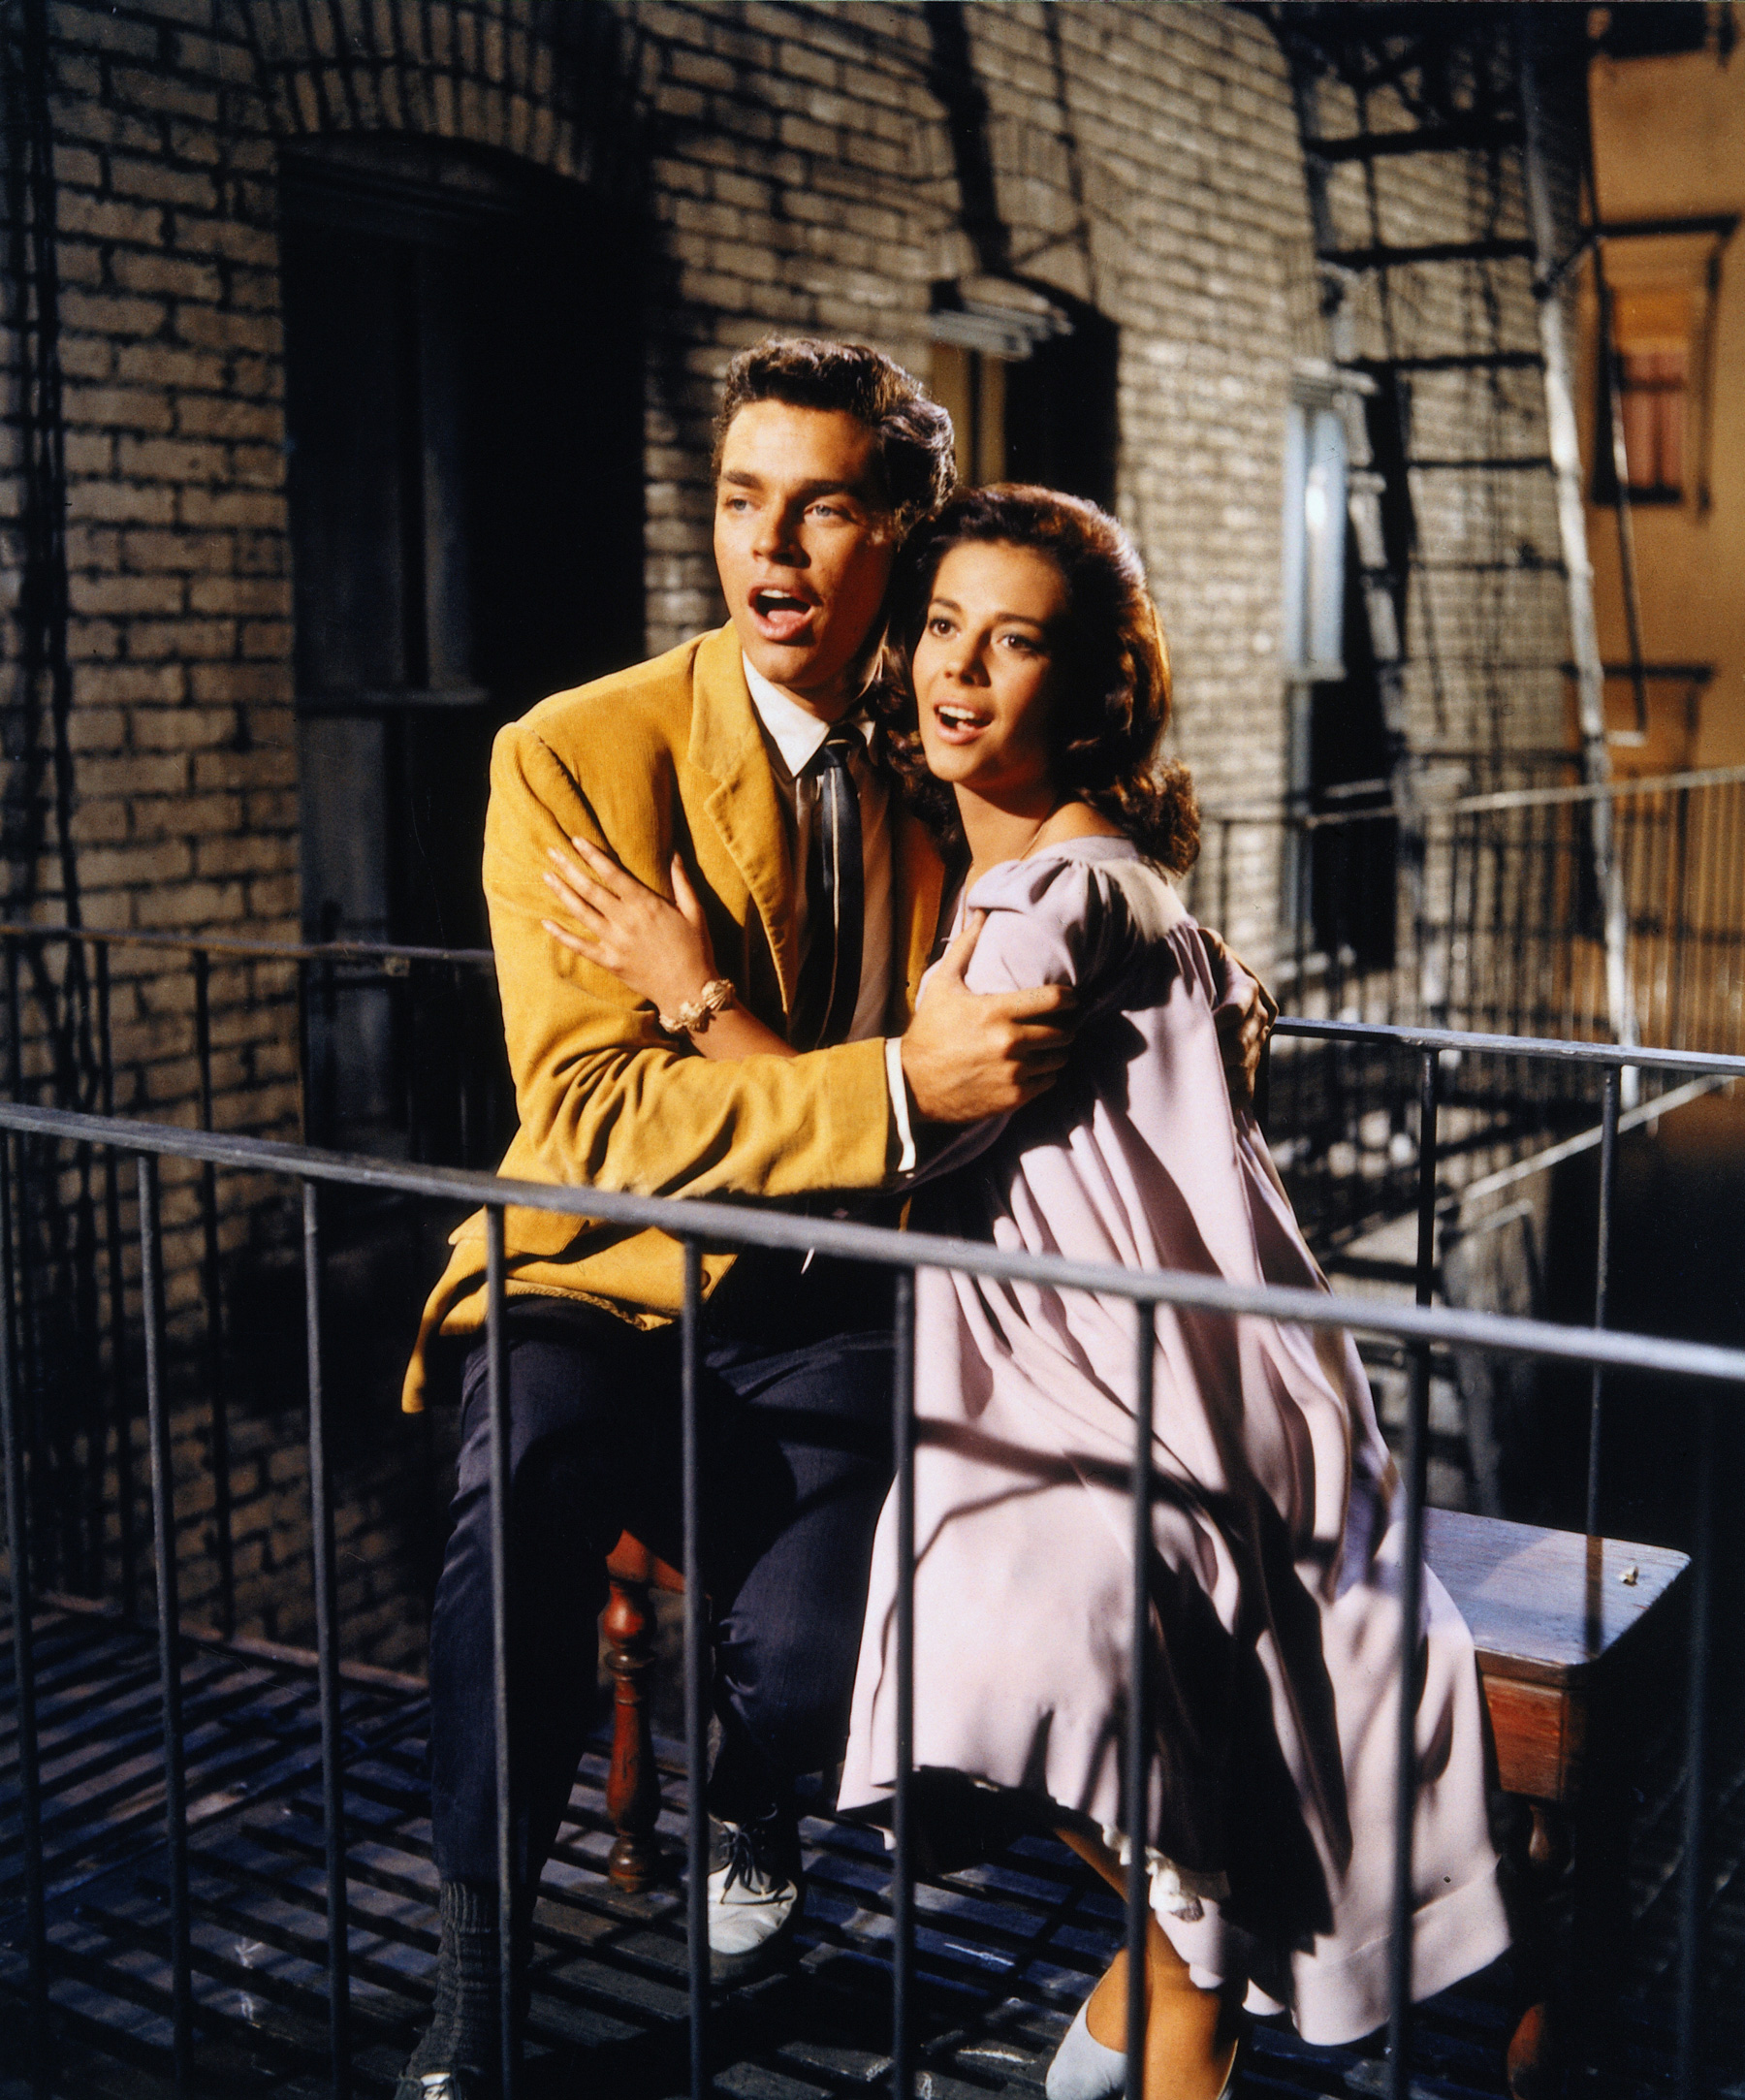 BSO hosts the secret voice of 'West Side Story' - The Boston